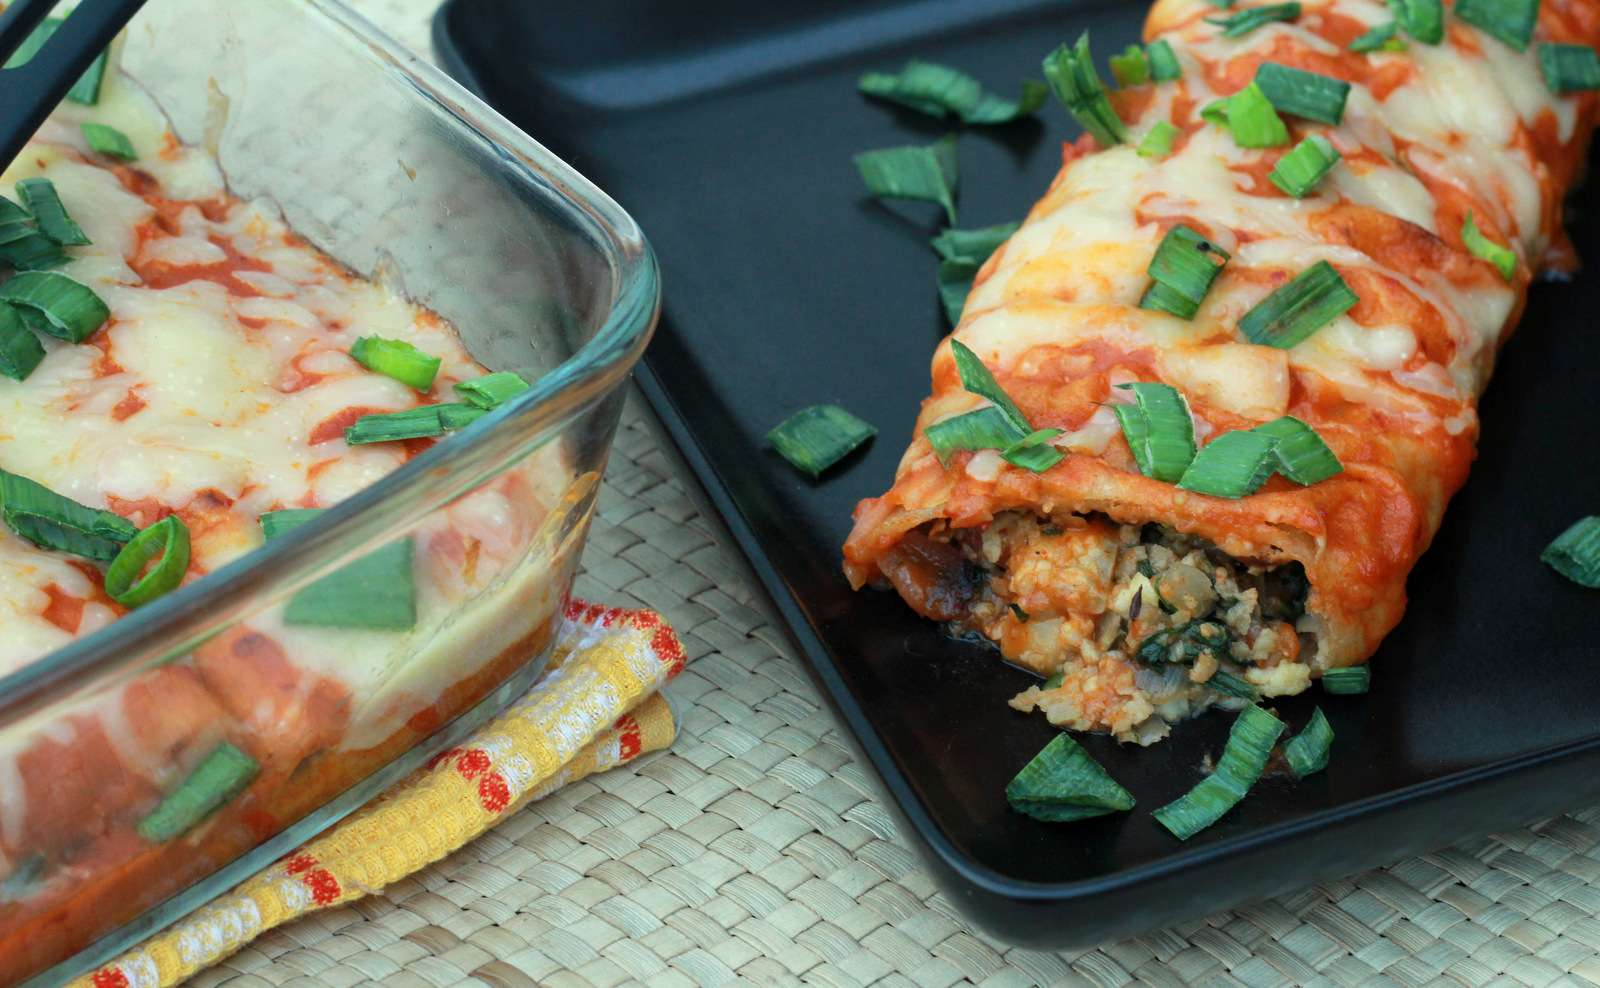 Spinach Enchilada Recipe